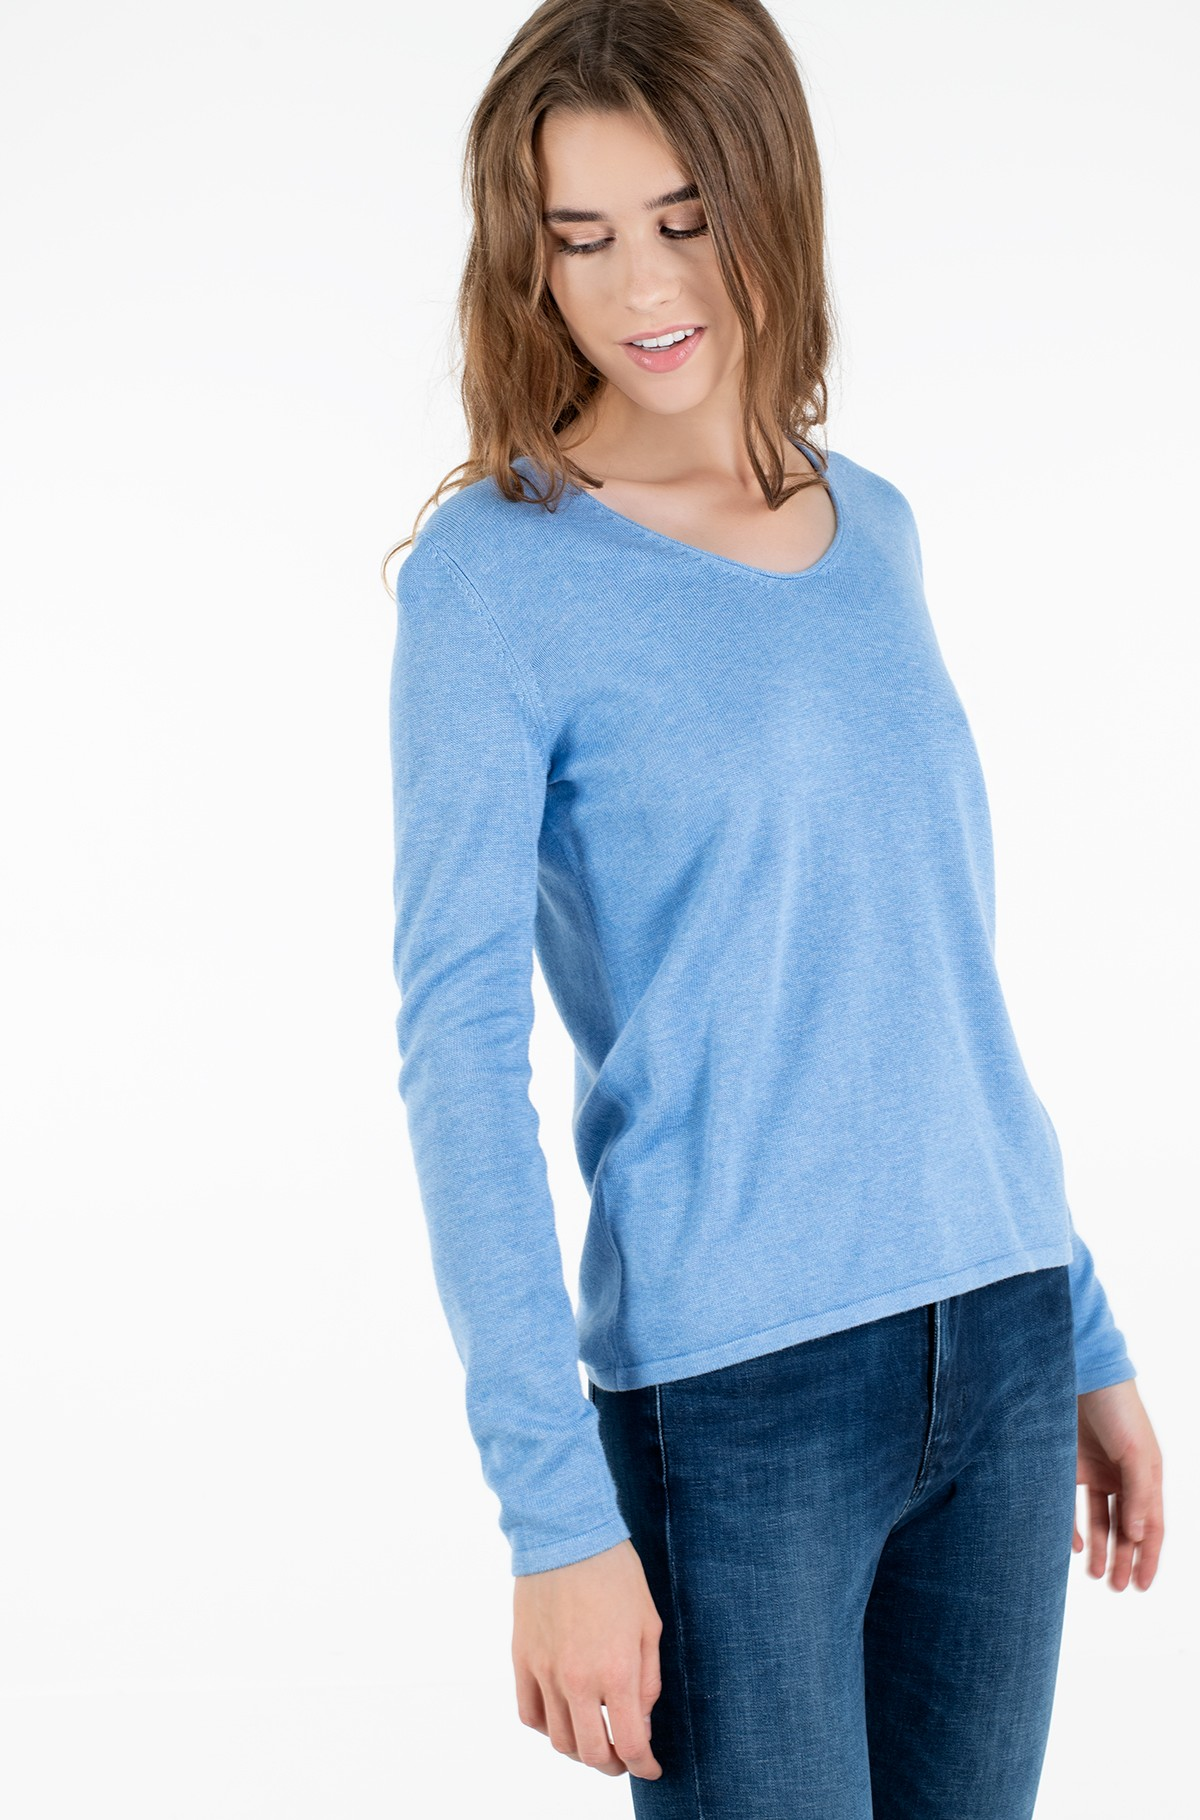 Sweater 1012976-full-1